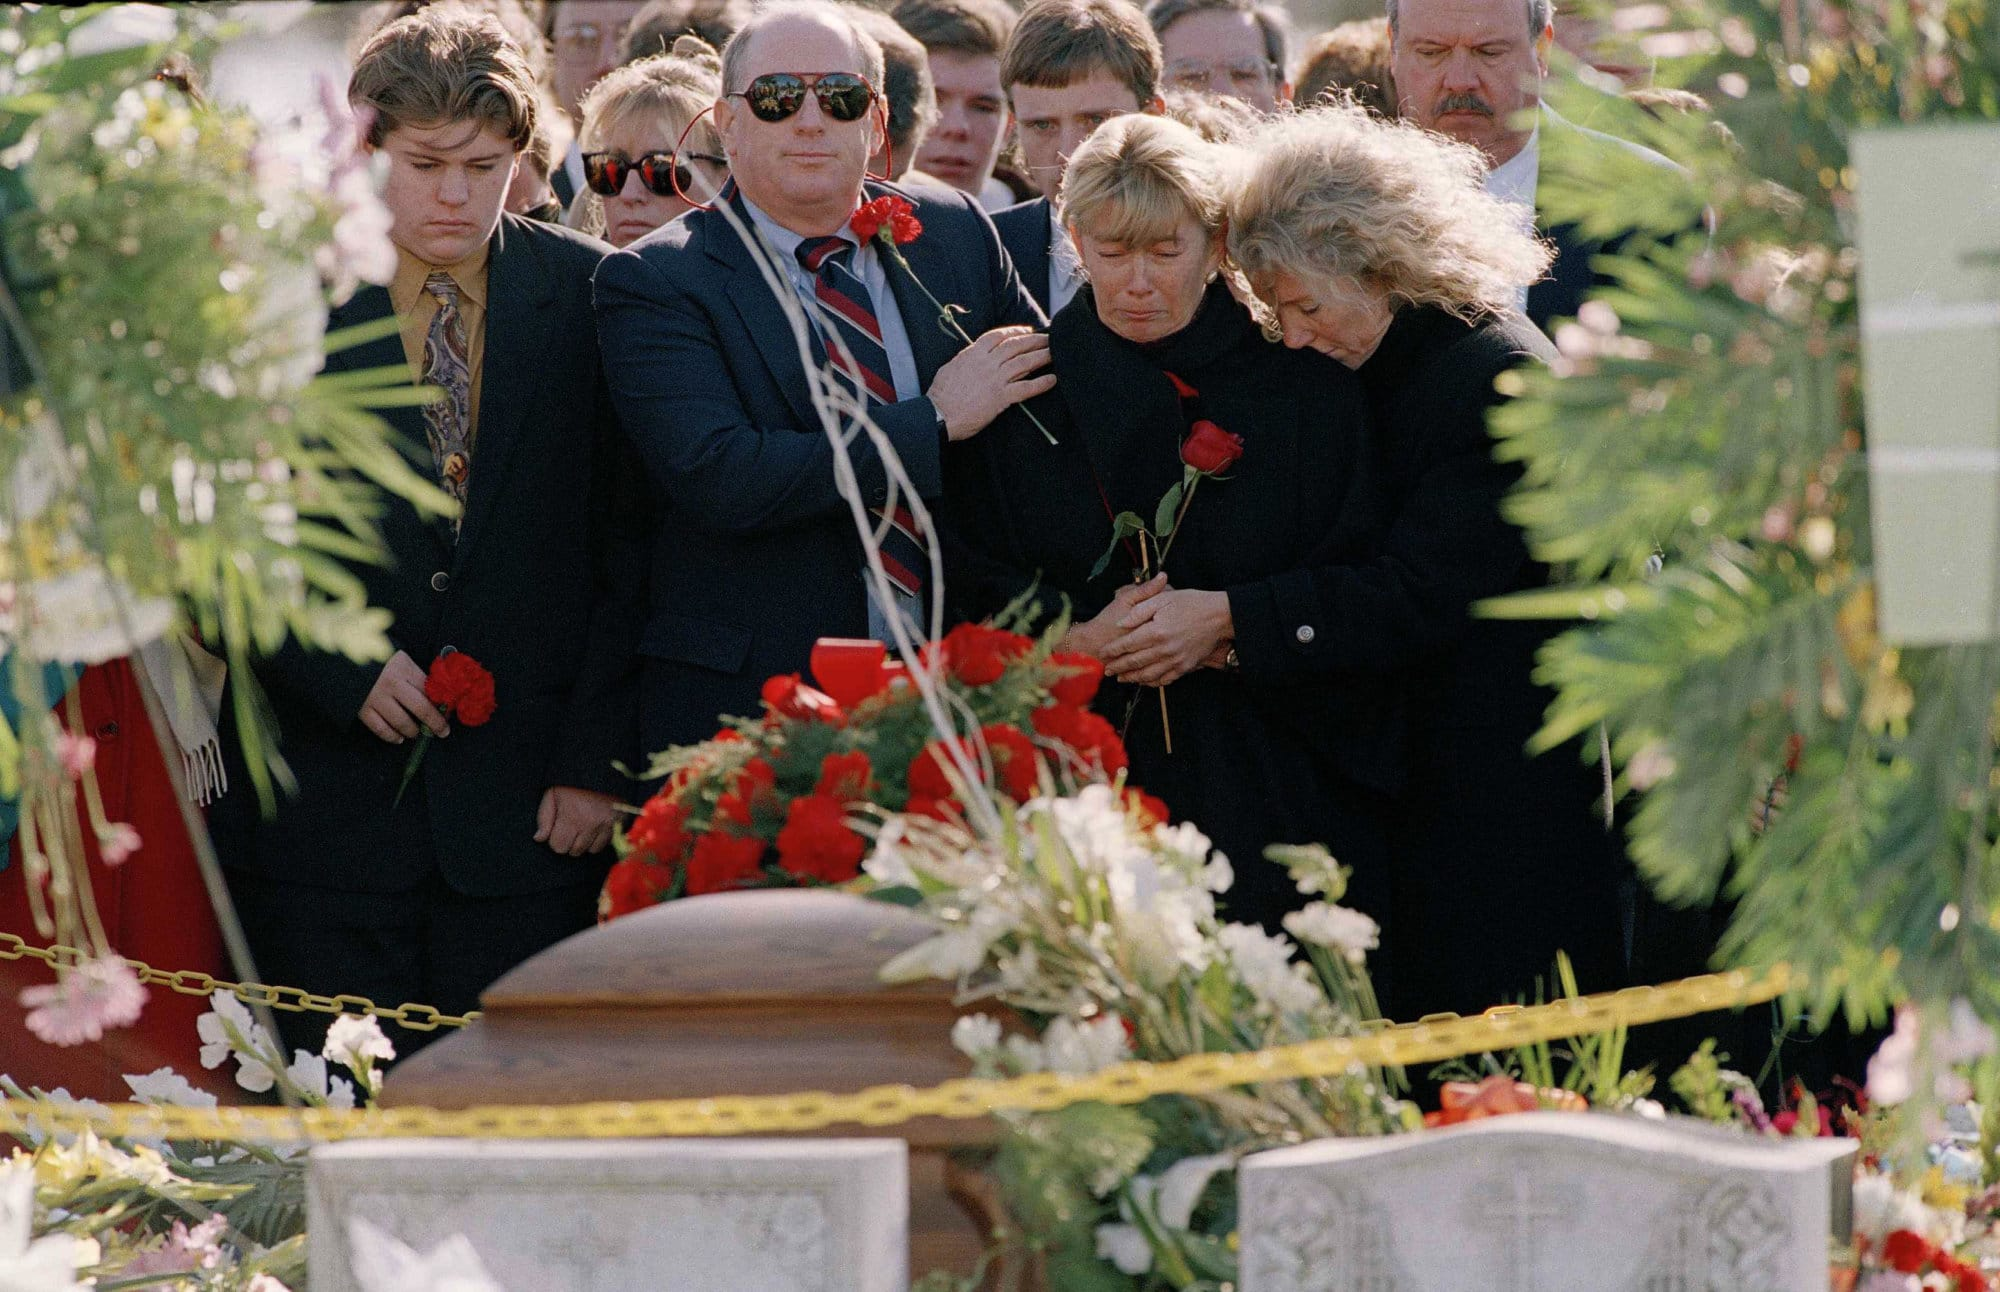 FILE- In this Dec. 13, 1993 file photo, Carolyn McCarthy, center, stands by the casket of her slain husband Dennis McCarthy at Holy Road Cemetery in Westbury, N.Y., Dec. 13, 1993. Mr. McCarthy was shot to death aboard a Long Island Railroad commuter train and their son, Kevin, was critically injured as well. In what was at the time one of the worst mass killings in history, a deranged gunman opened fire aboard a Long Island Rail Road train filled with commuters leaving New York City. Six people died and 19 were injured.  (AP Photo/Mike Albans, File)